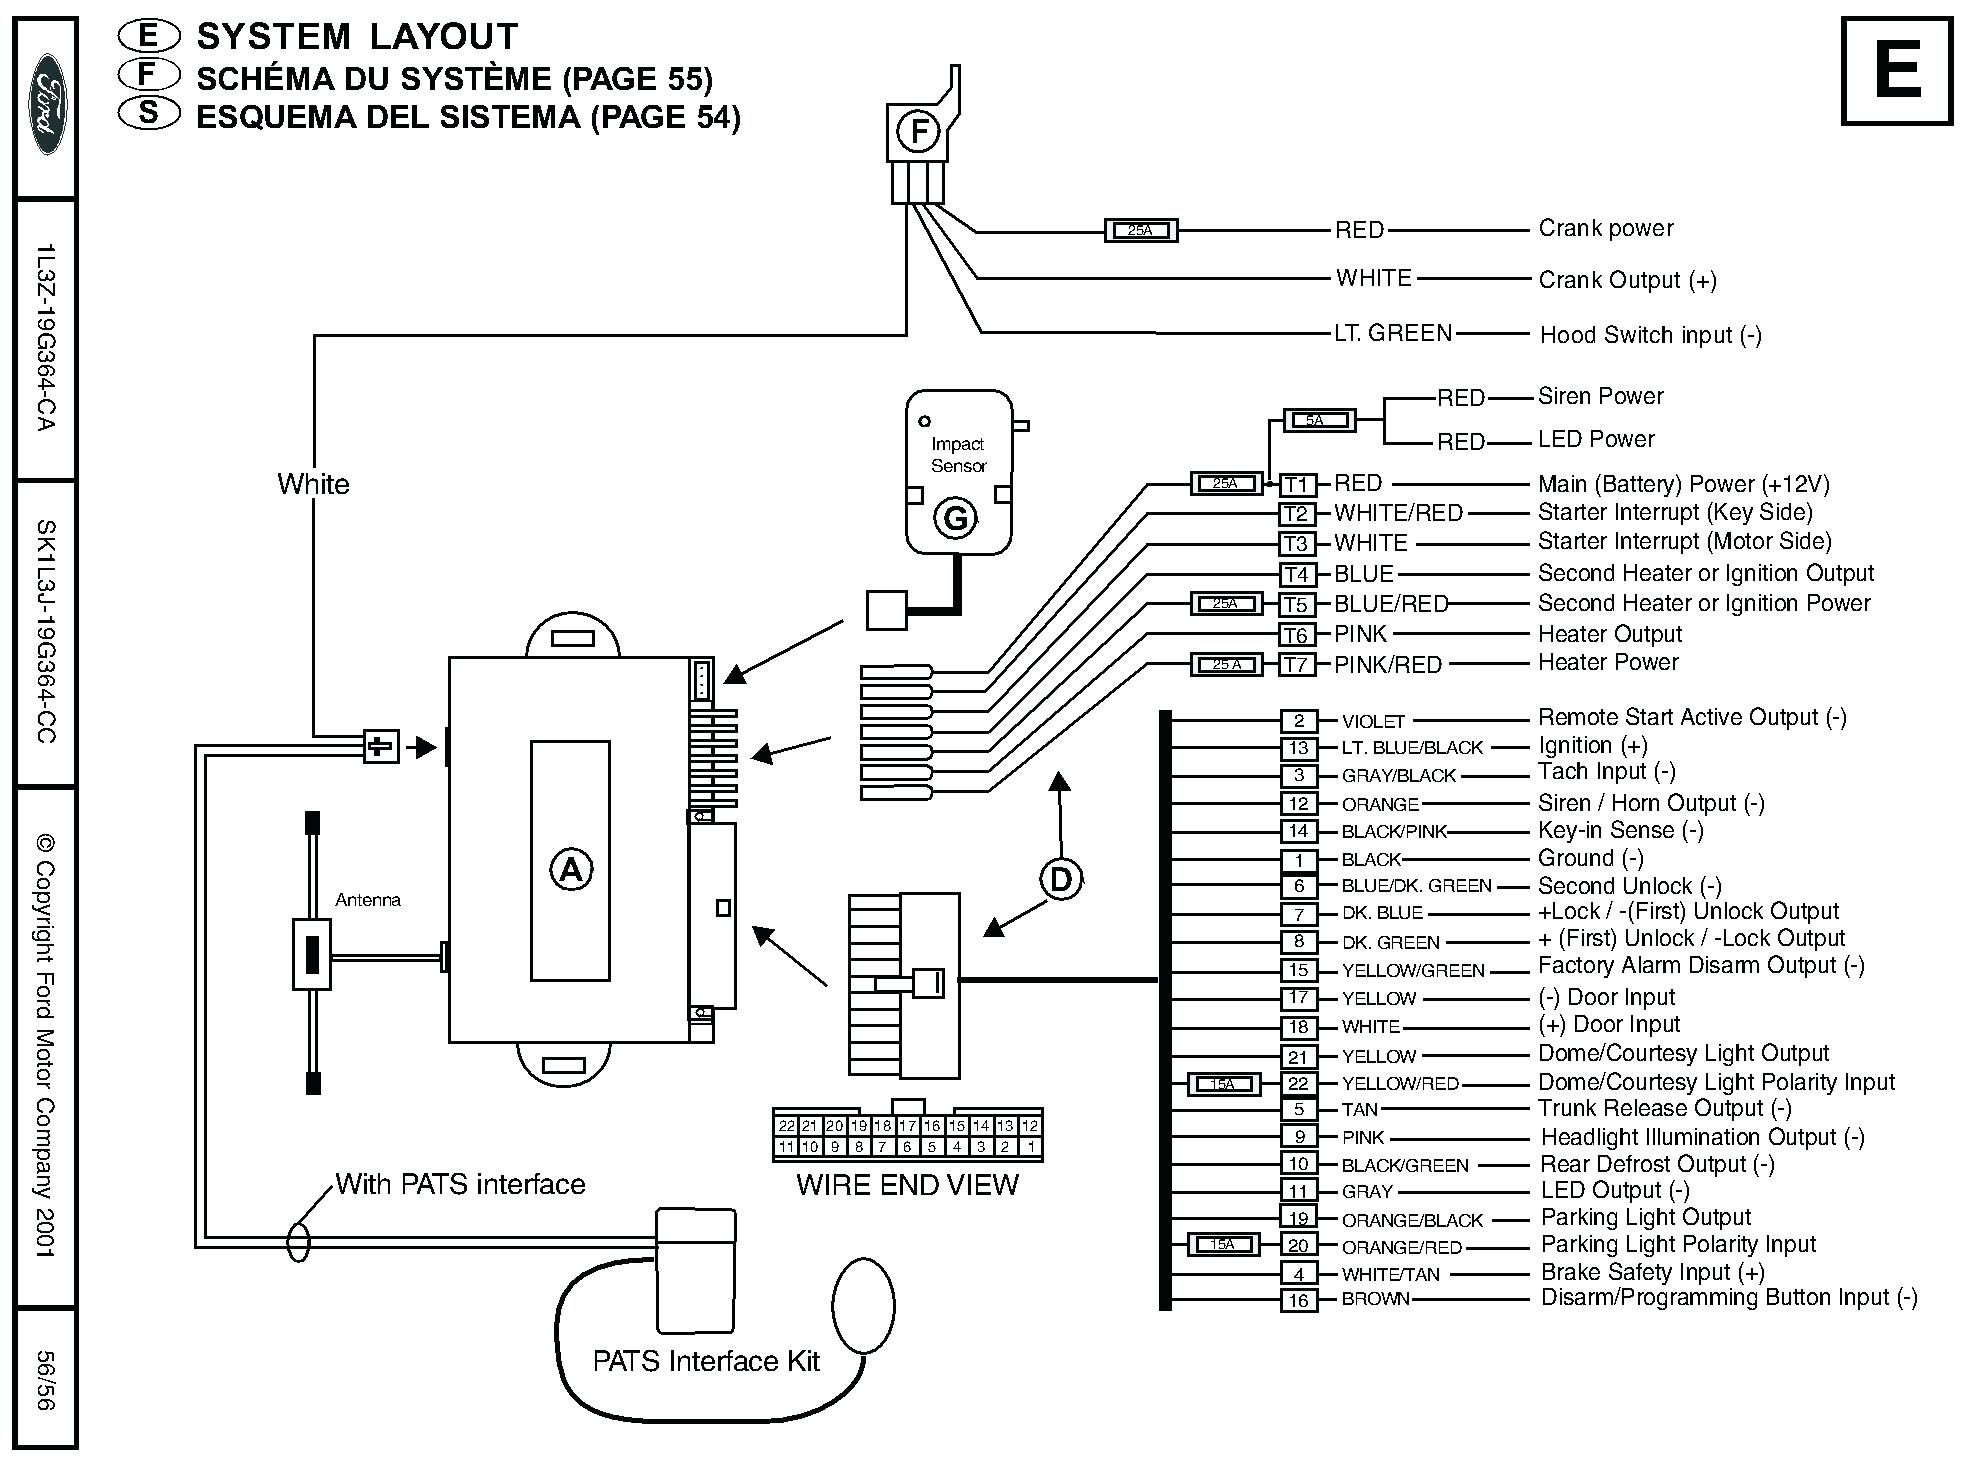 [SCHEMATICS_4CA]  Daihatsu Terios Wiring Diagram Free Kid Pictures Information And In |  Electrical wiring diagram, Remote car starter, Remote start | Wiring Diagram Remote Car Starter |  | Pinterest